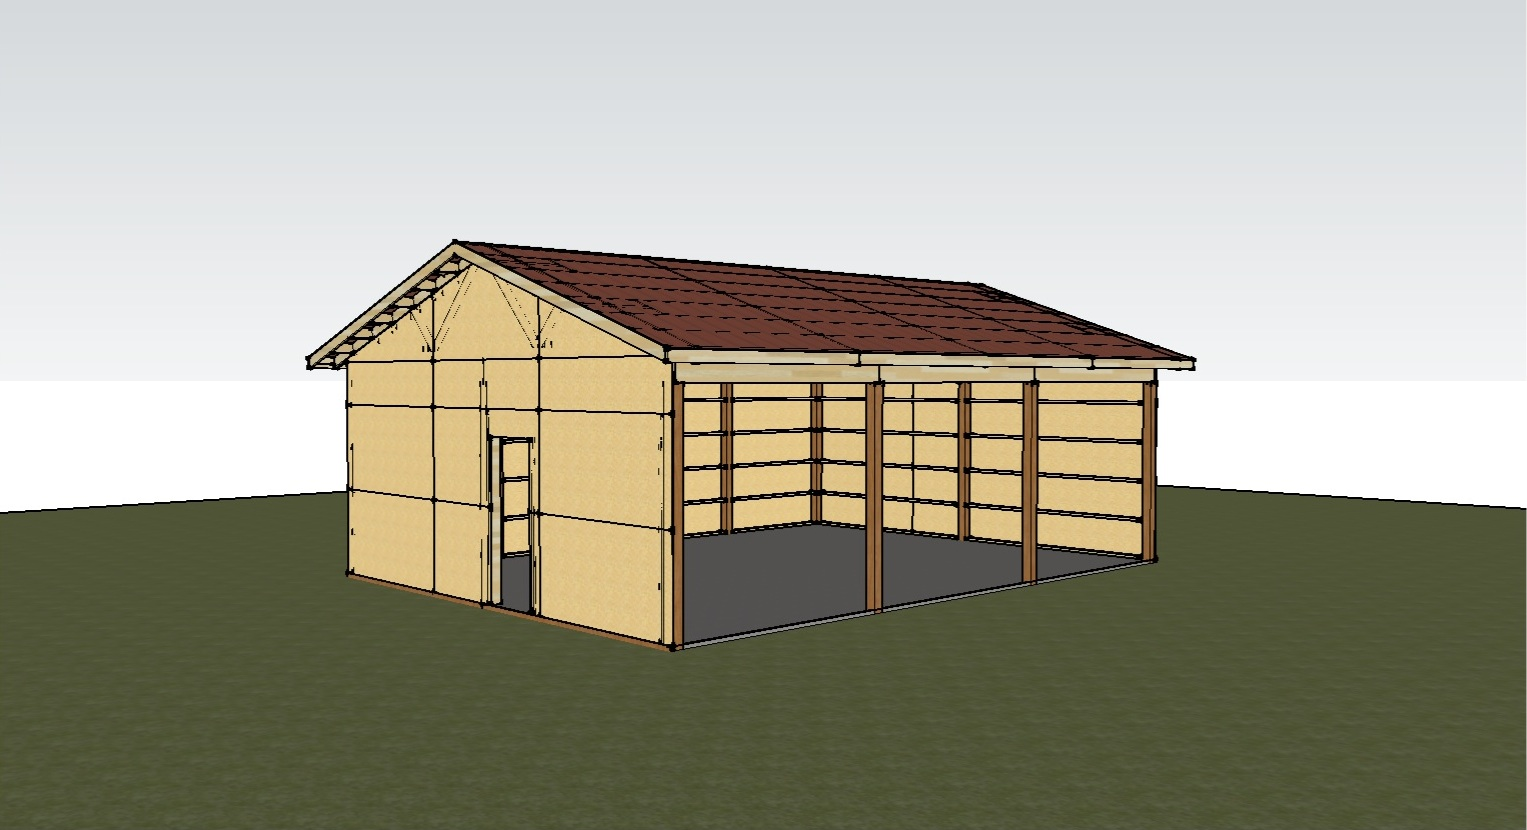 Pole barn plan joy studio design gallery best design for Building planner